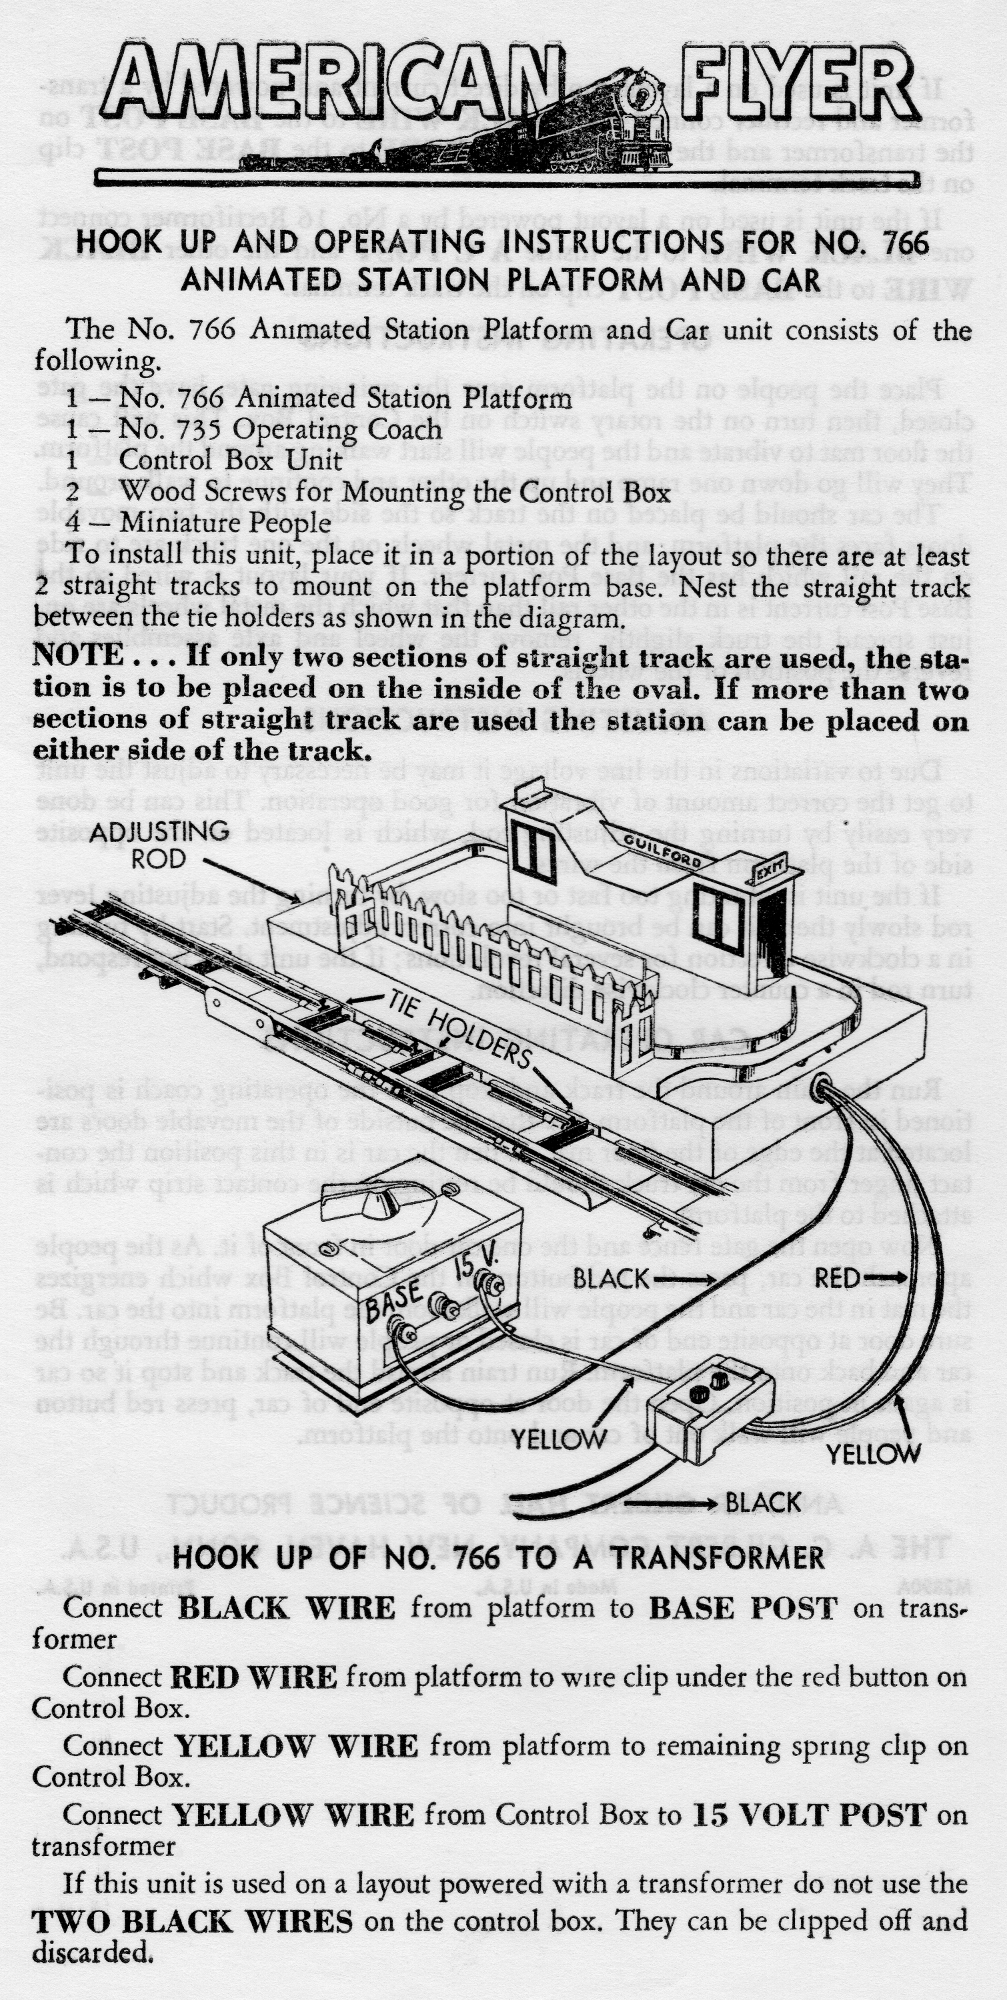 Hook Up and Operating Instructions for No. 766 Animated Station Platform & Car - Page 1